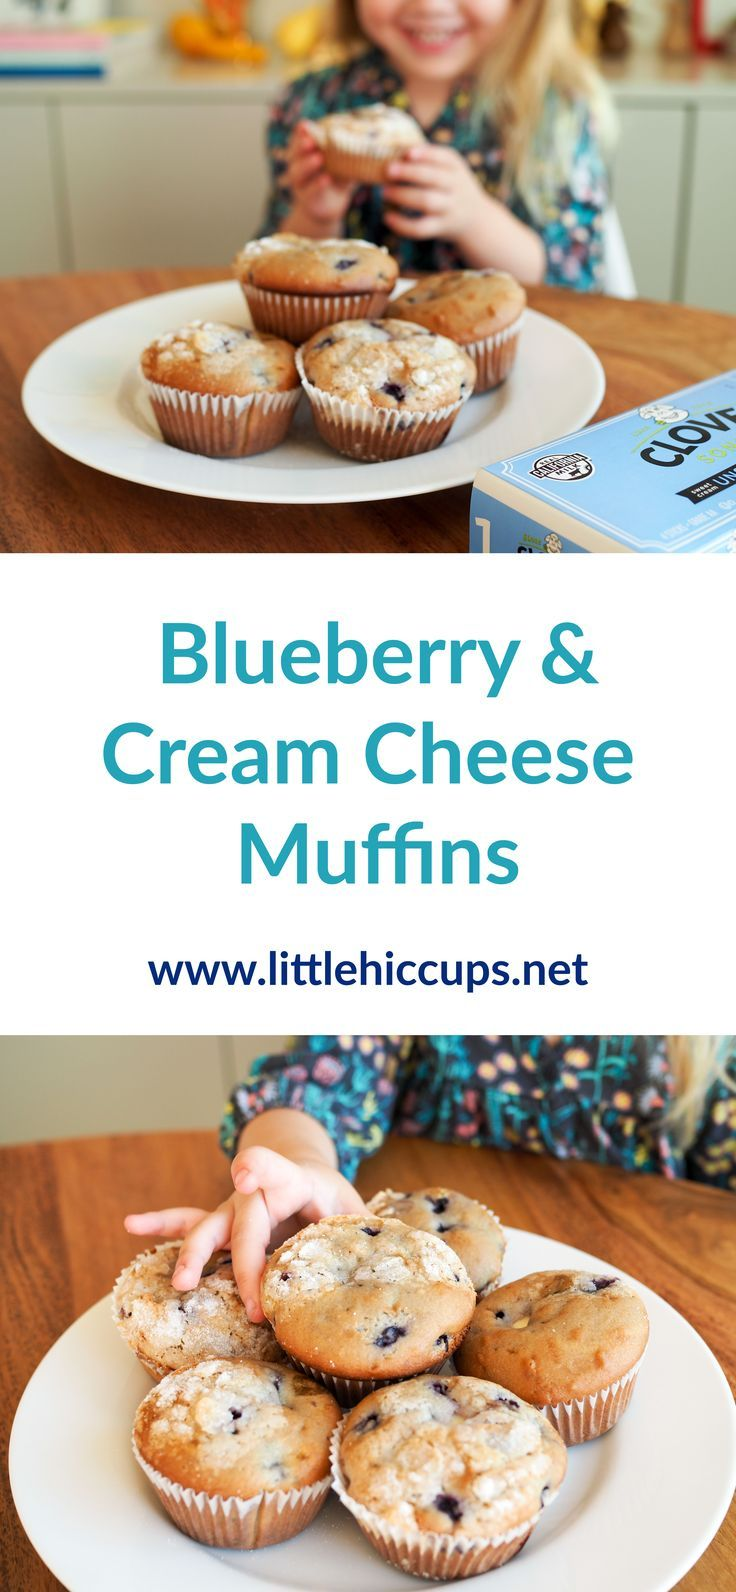 Blueberry & Cream Cheese Muffins from littlehiccups.net #sponsored #spottheseal